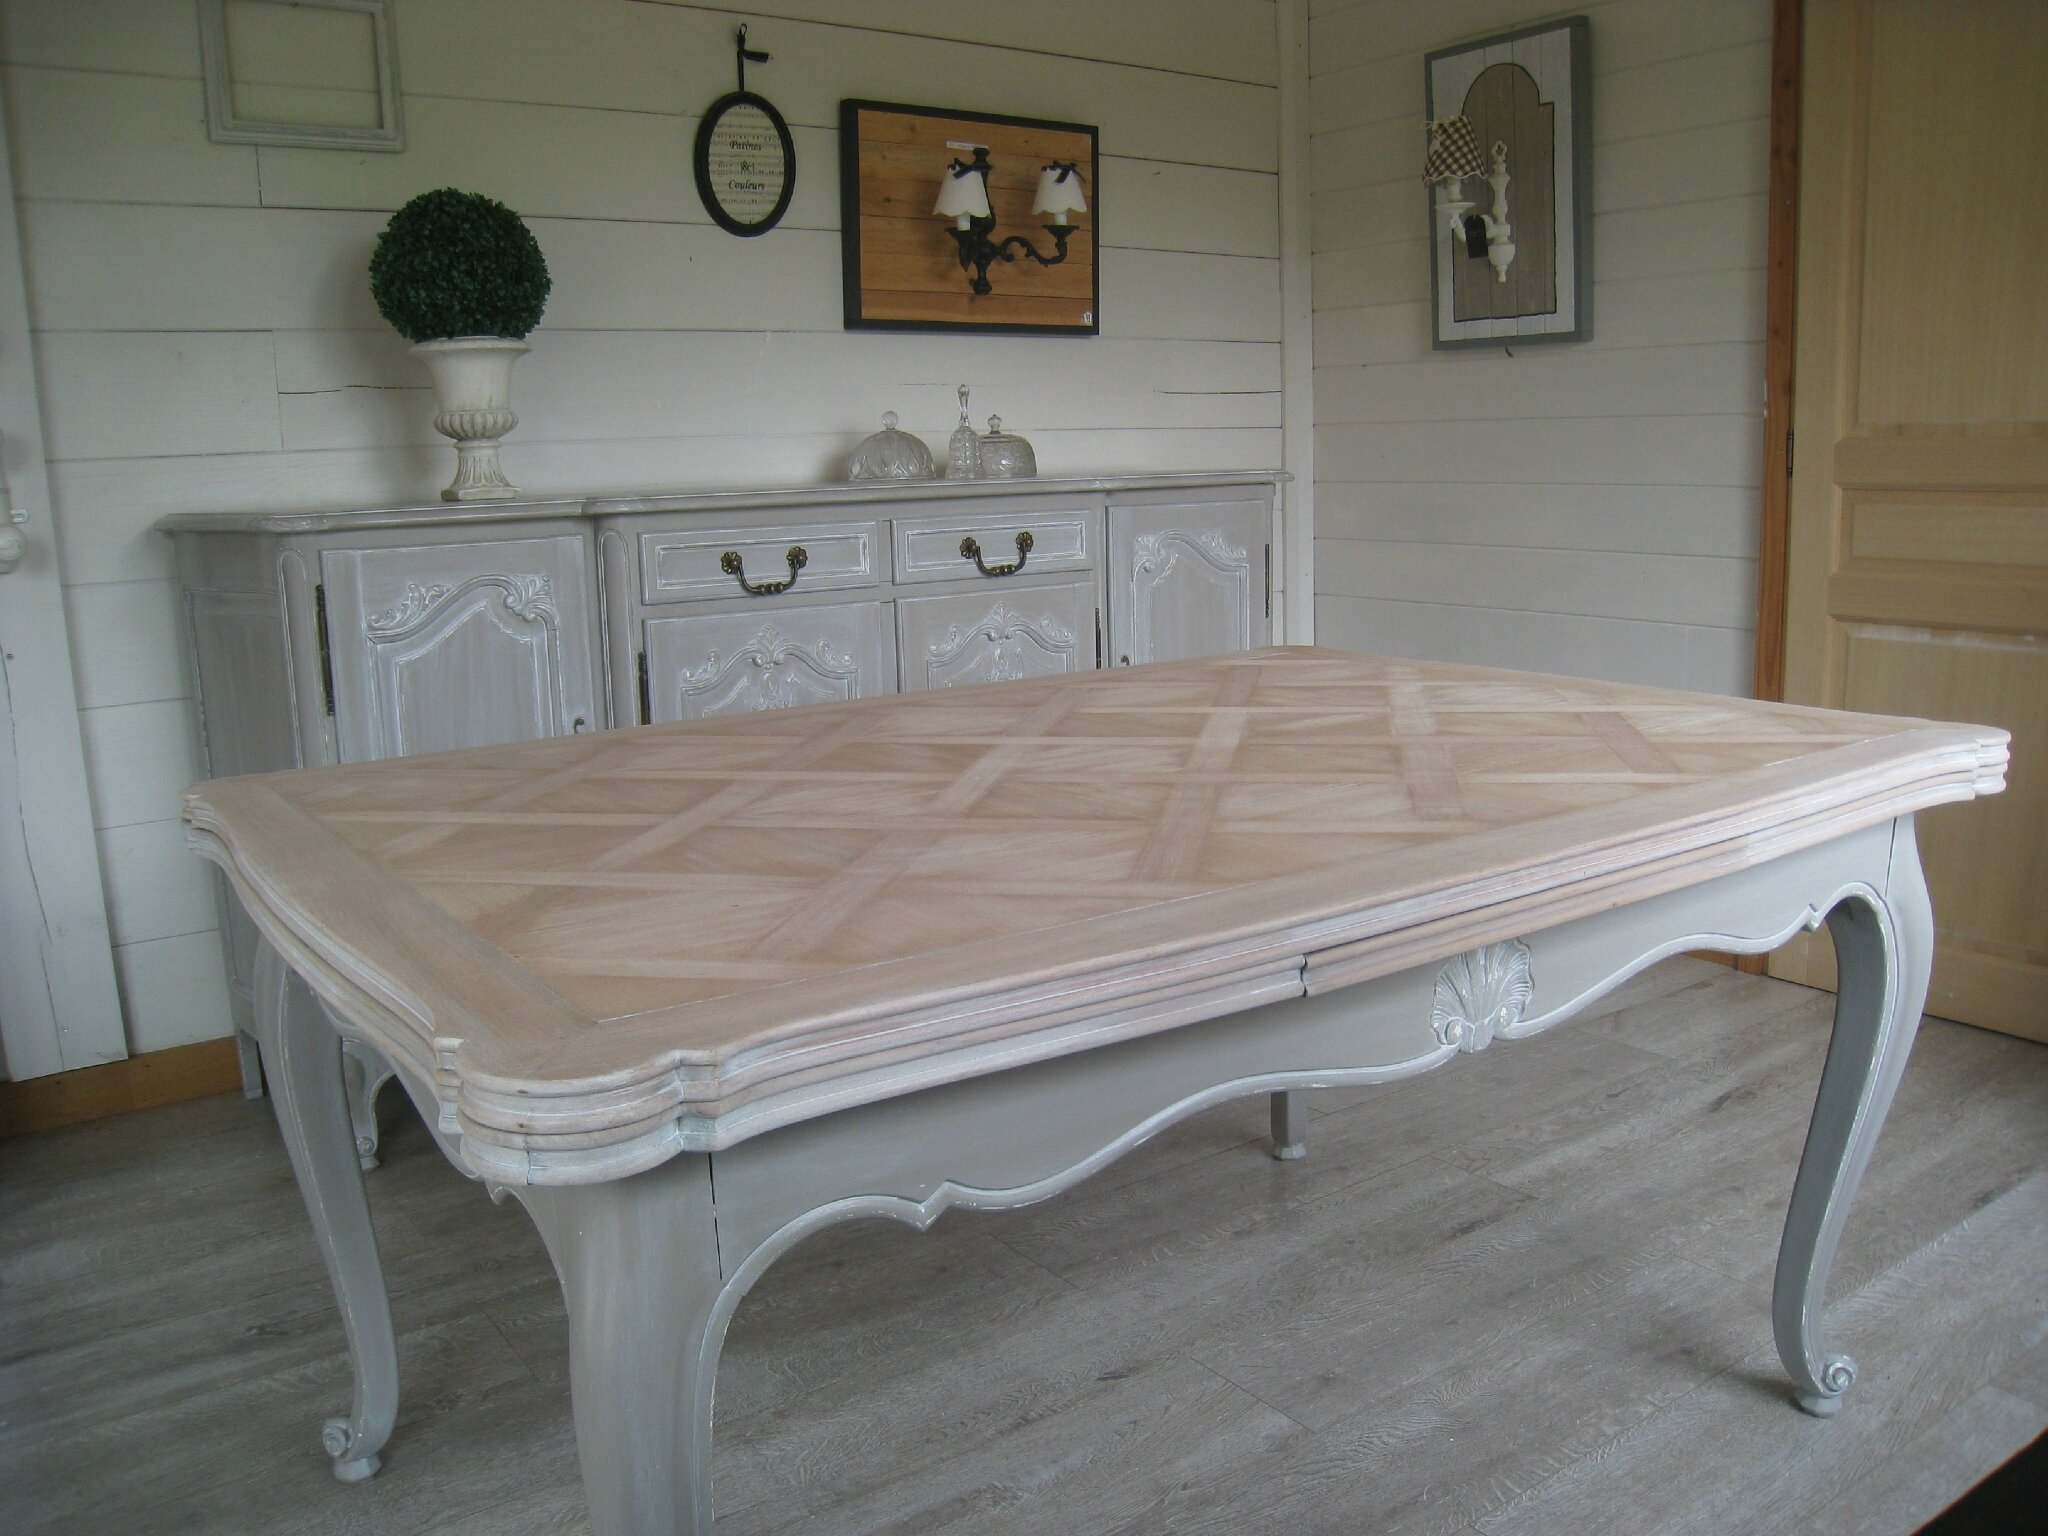 Bahut r gence relook et sa table assortie 2 patines - Vieille table en bois ...